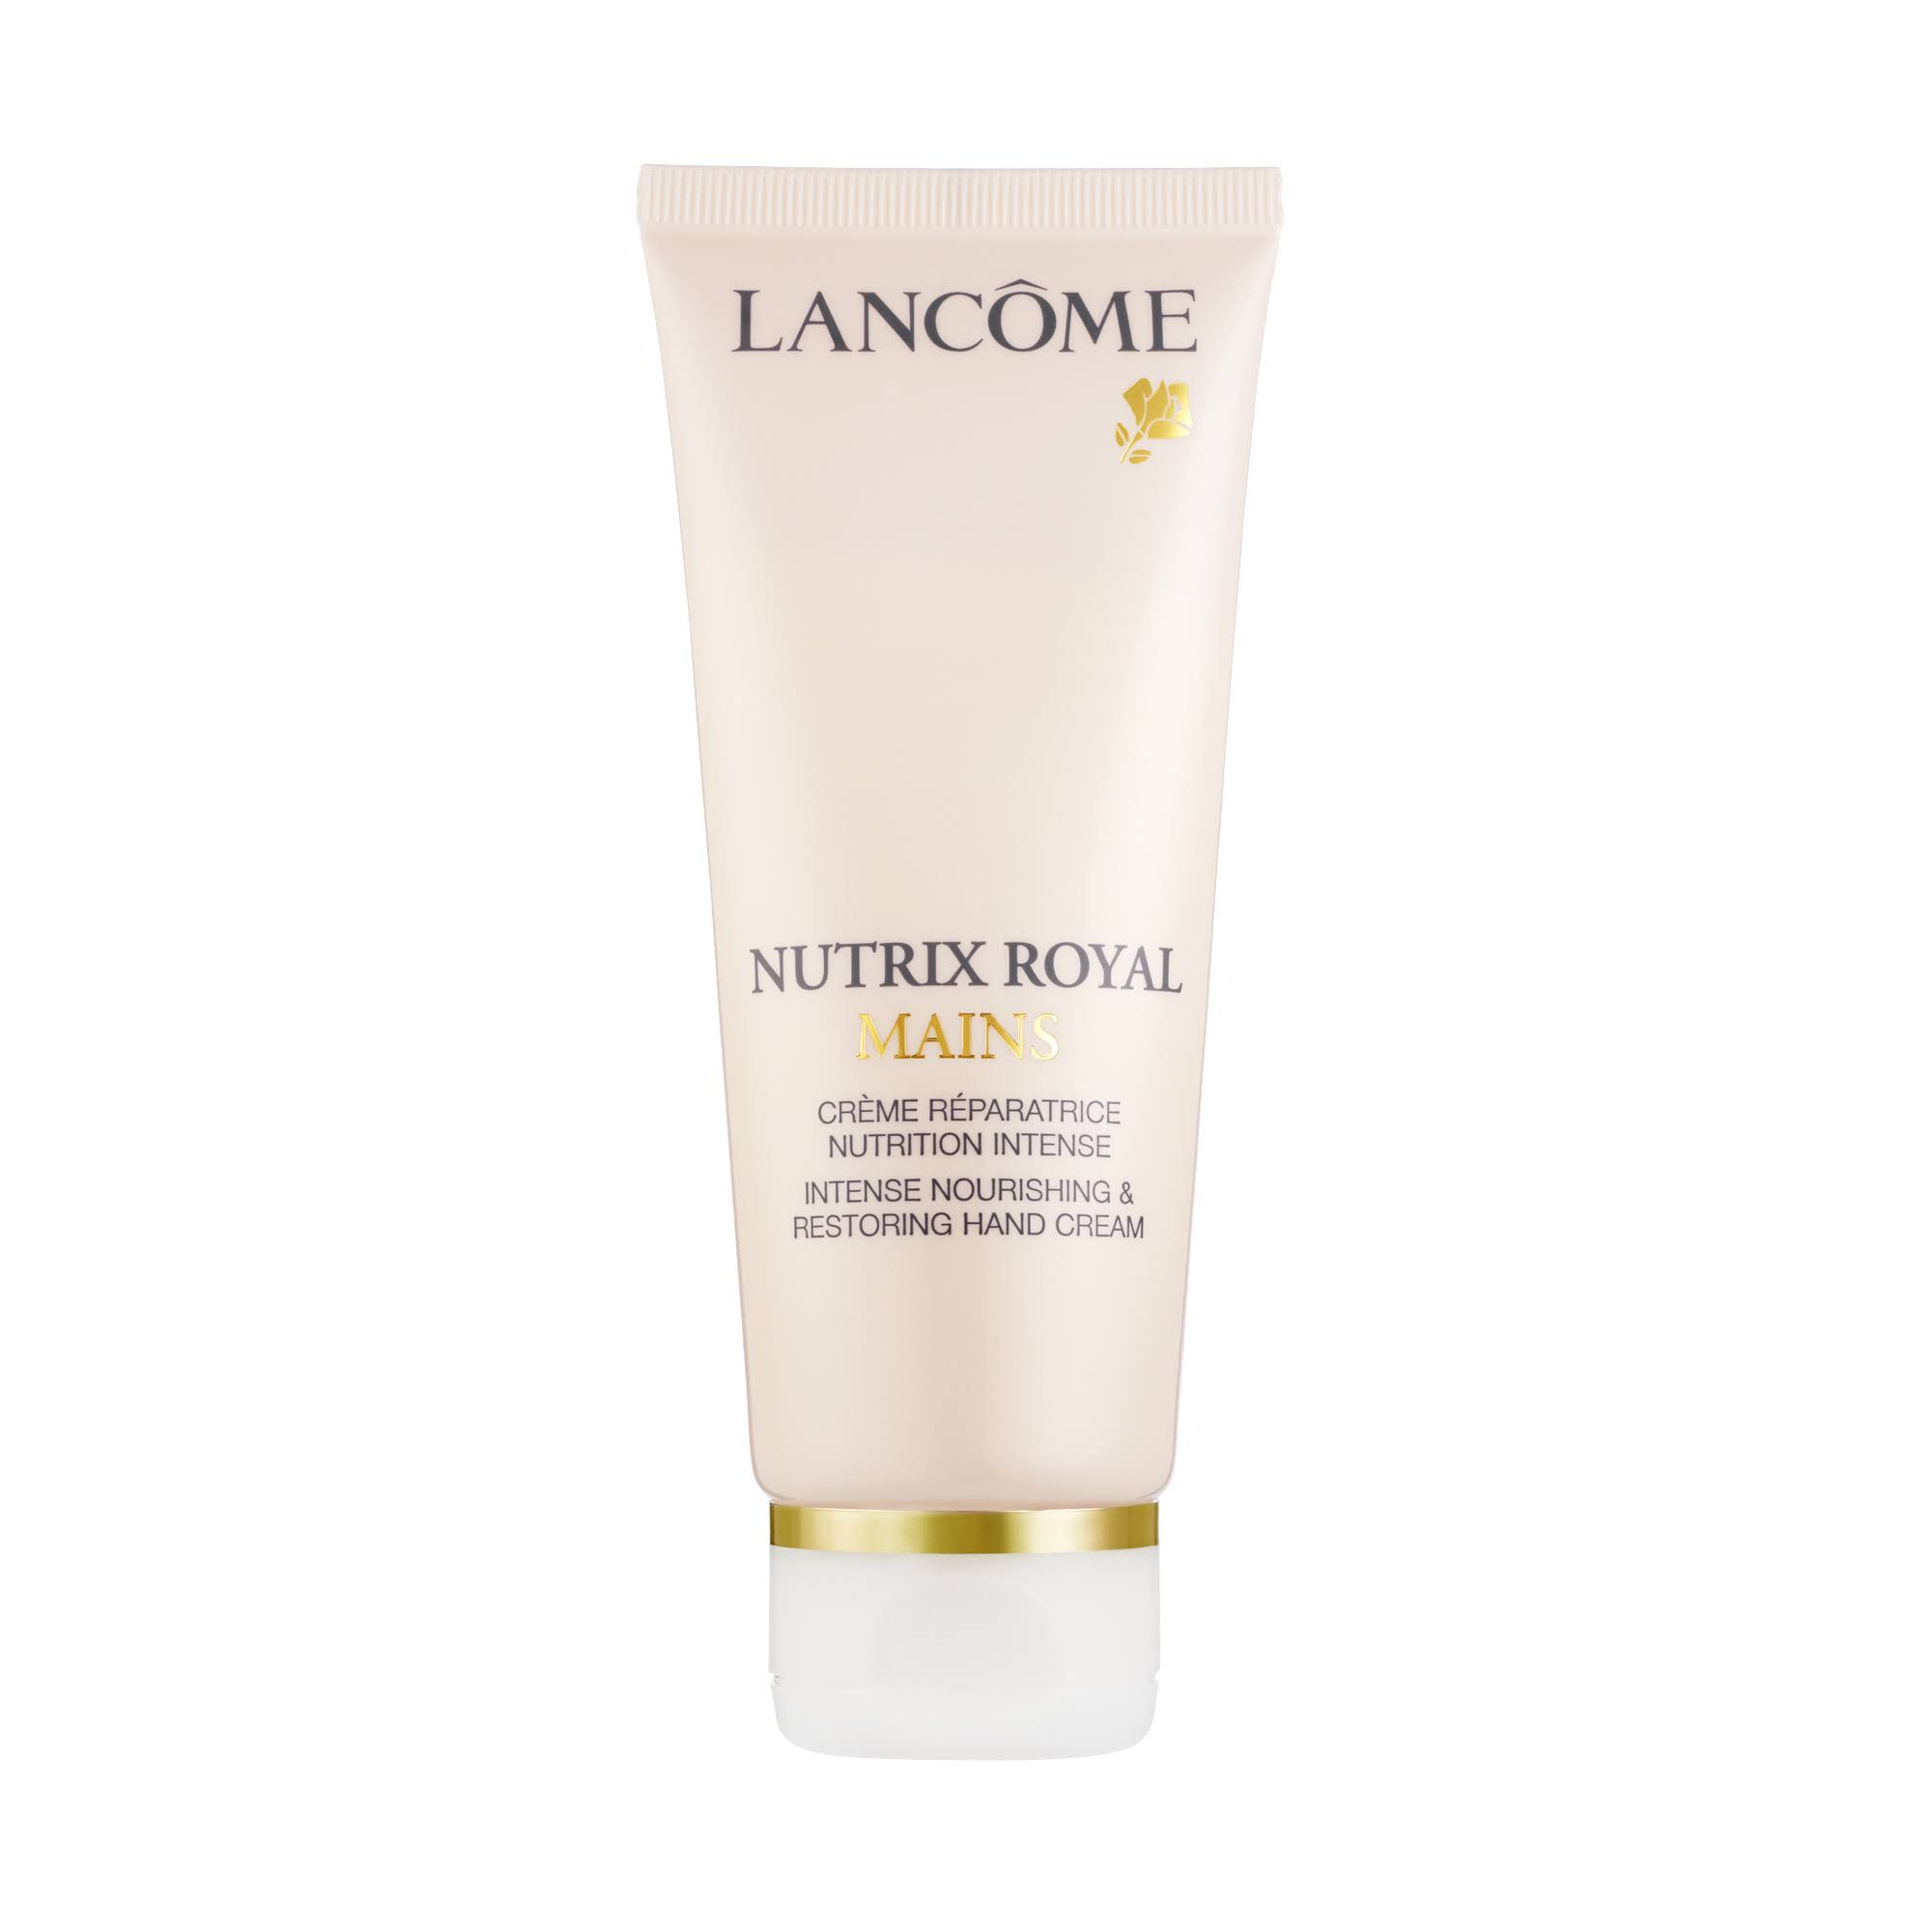 Lancome Nutrix Royal Mains Hand Cream -100ml